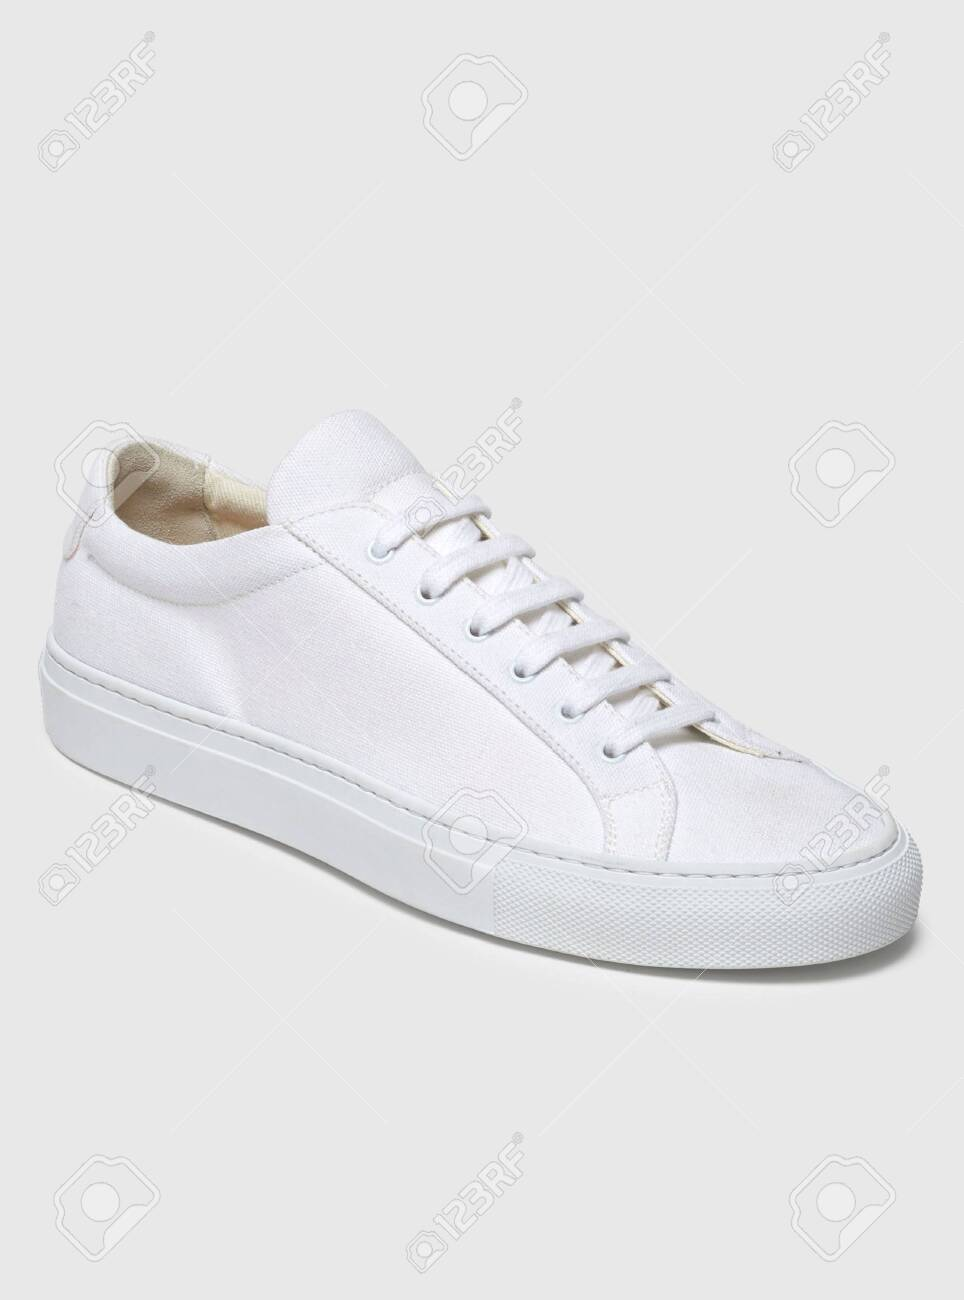 White Casual Sneakers With White Base